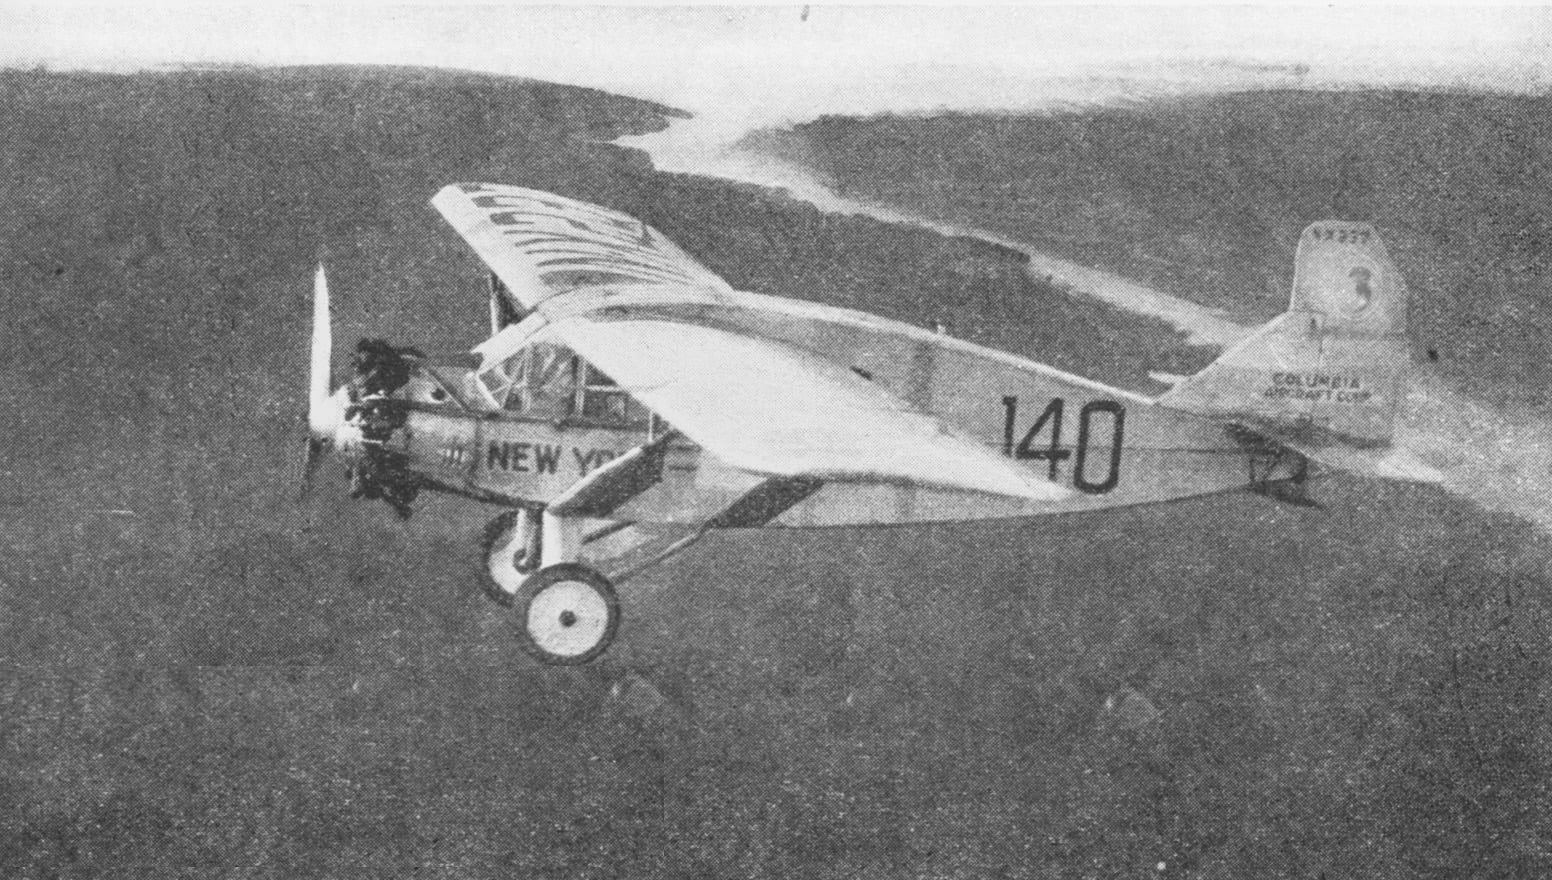 Bellanca: The Bellanca Columbia of Chamberlin and Levine seen soon after departure from Roosevelt Field on Long Island. Source: Dennis Parks